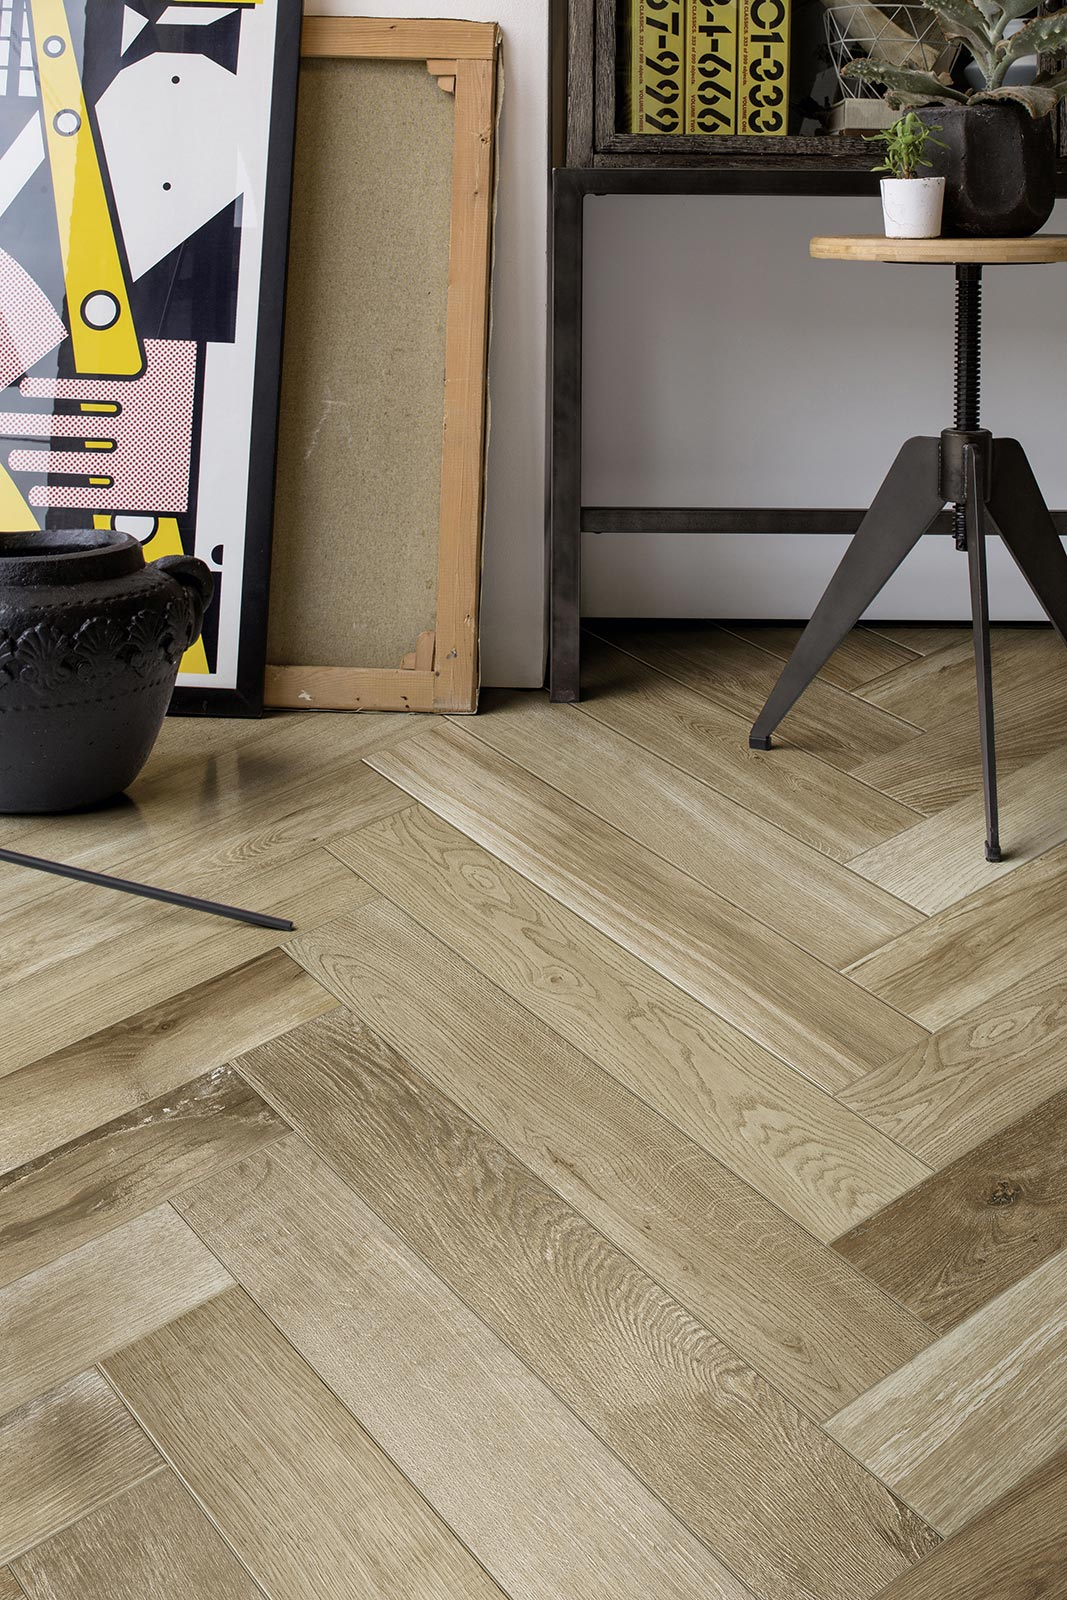 Living room floor inspiration for your furniture marazzi for Floor and decor tile class